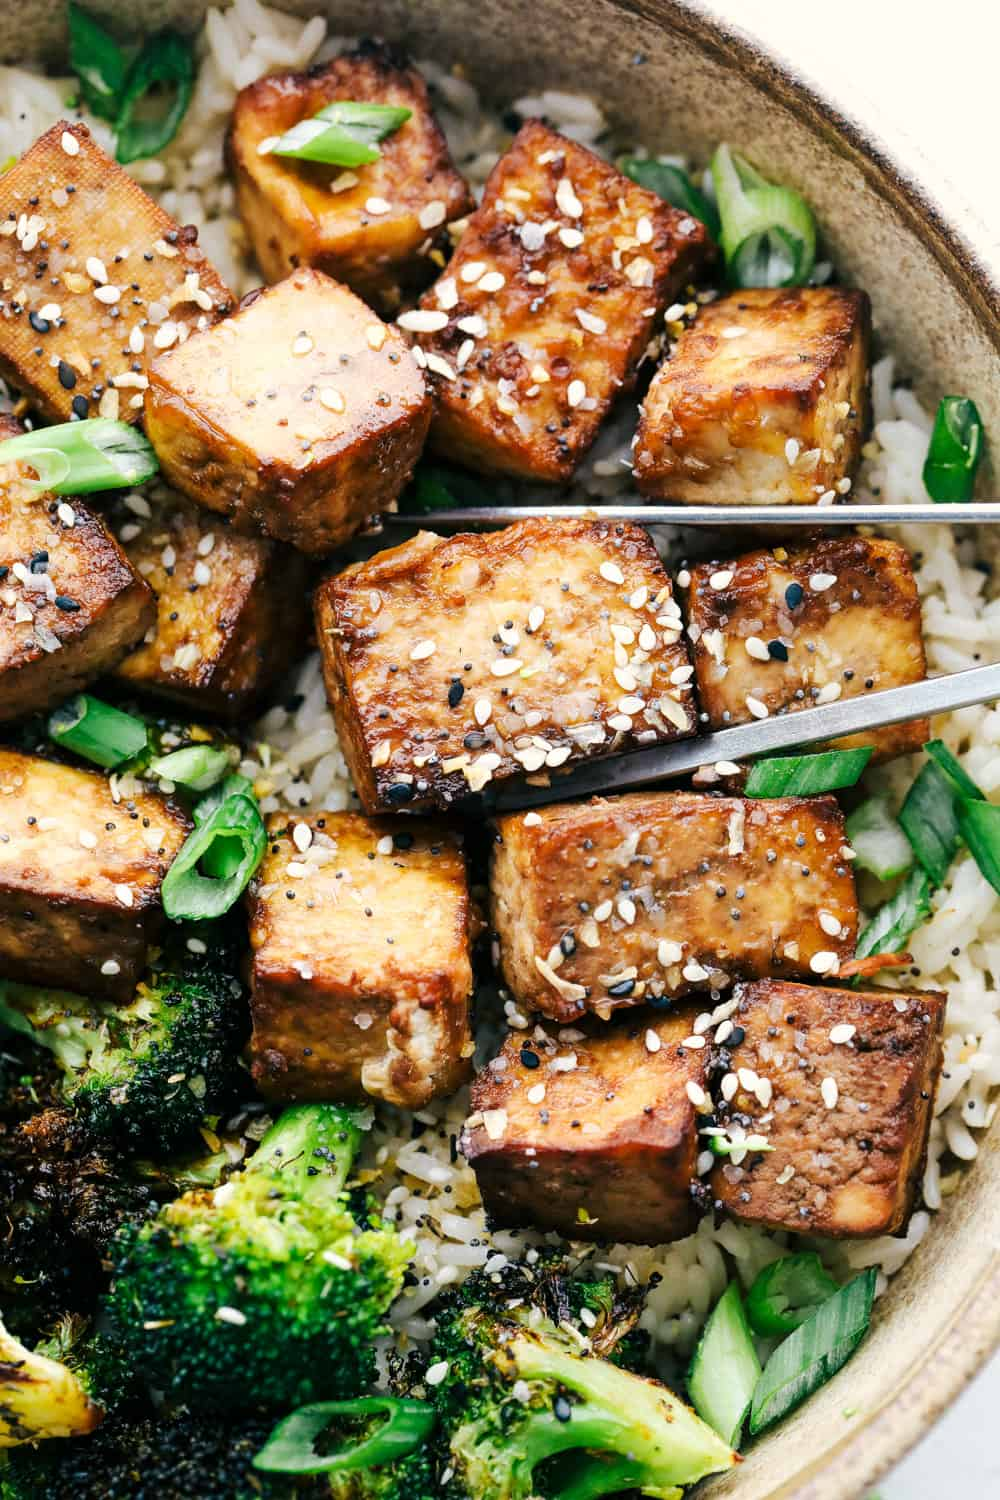 Using chopsticks to pick up air fried tofu with rice and broccoli.